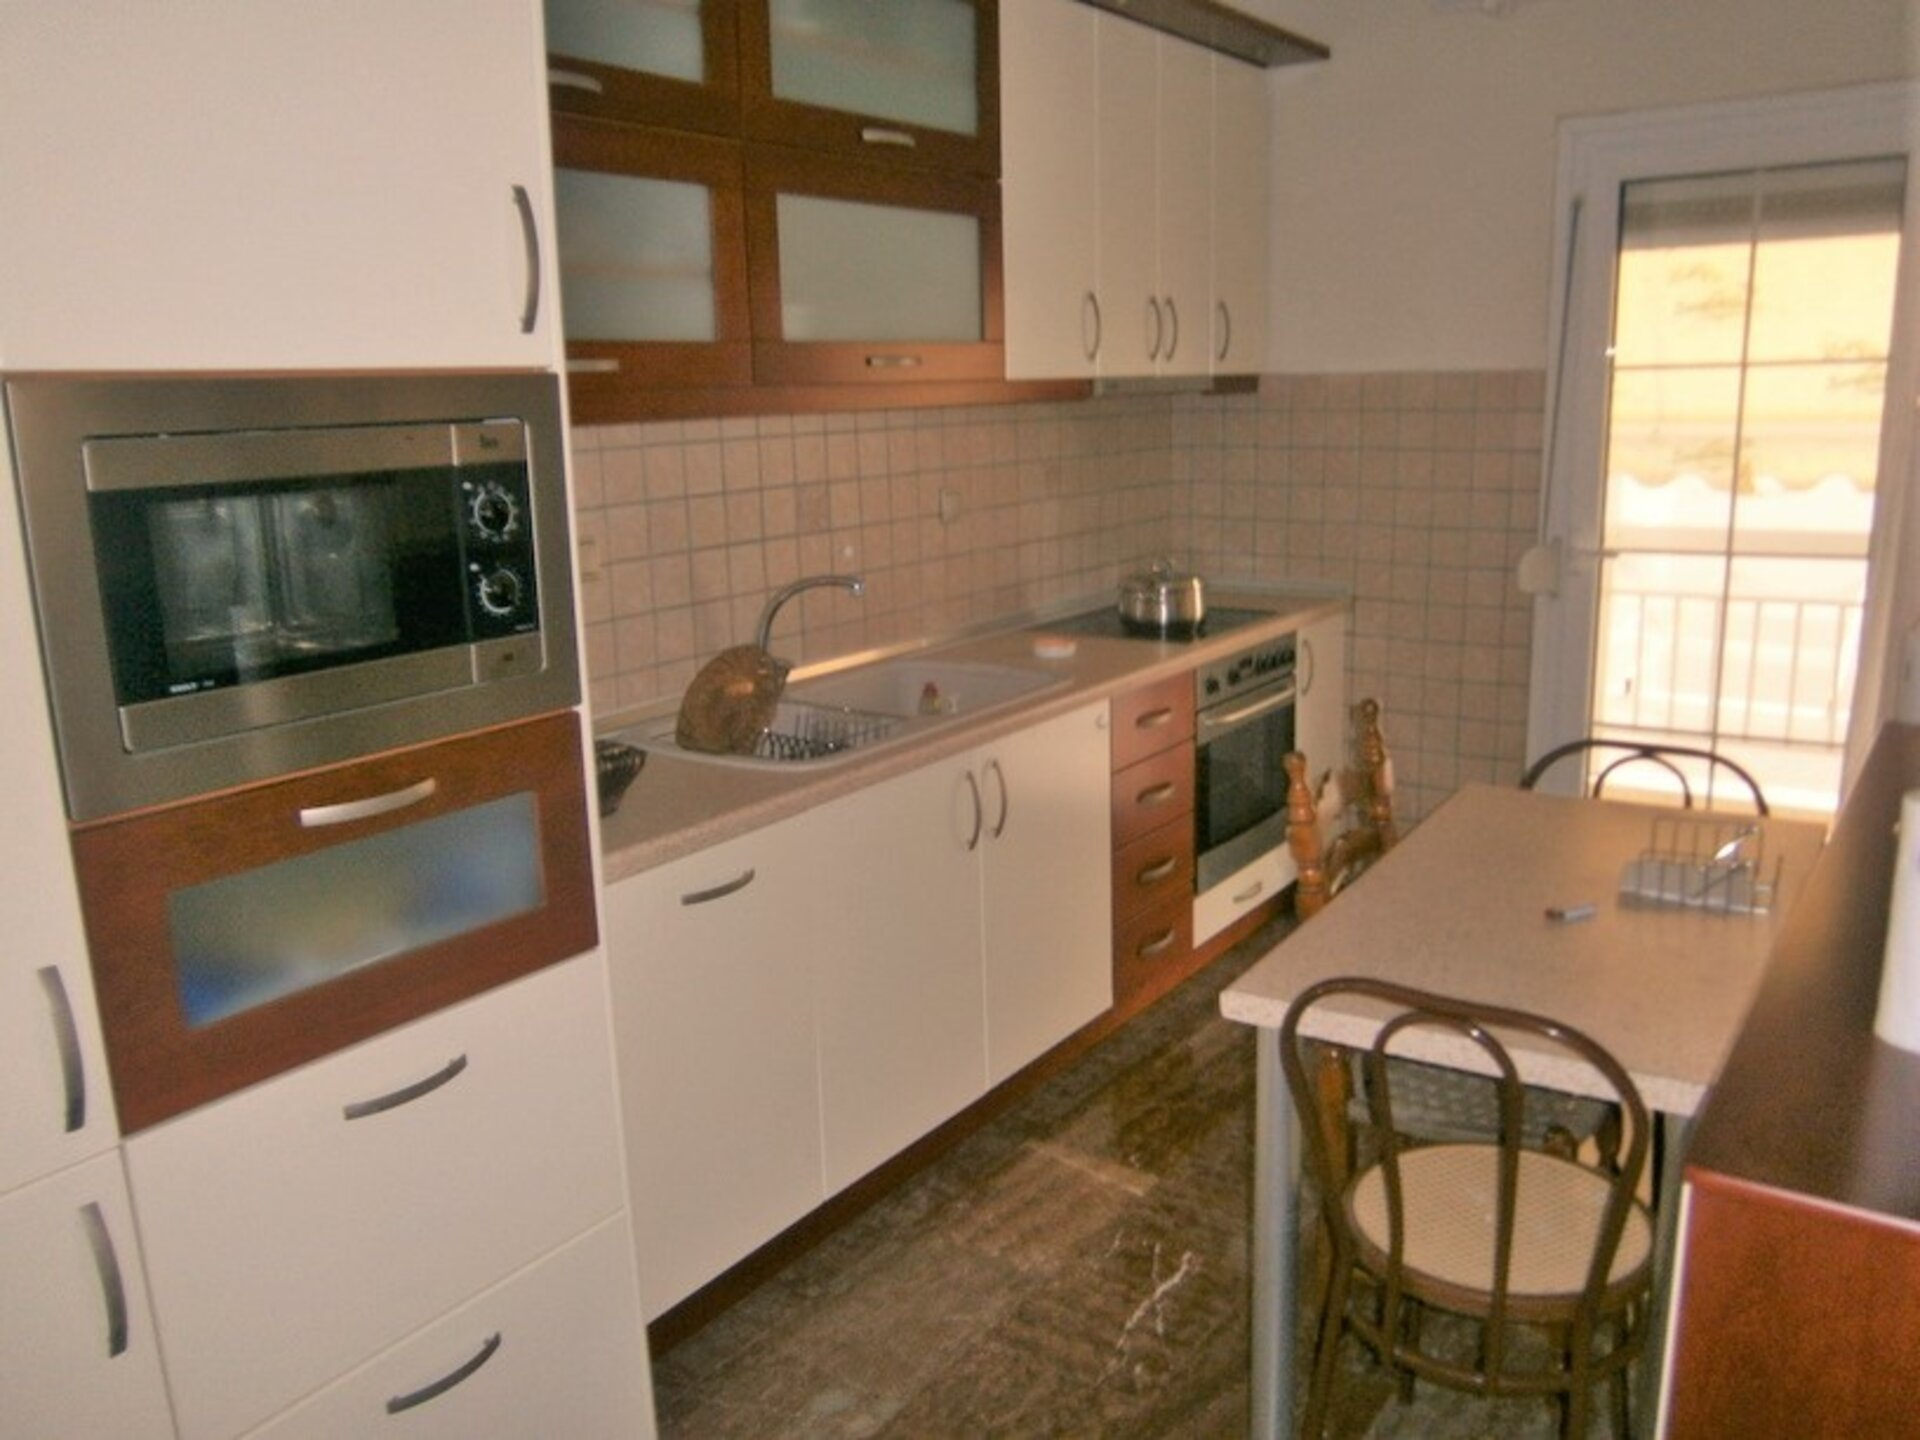 3 bedroom Flat  in Thessaloniki  RE0617